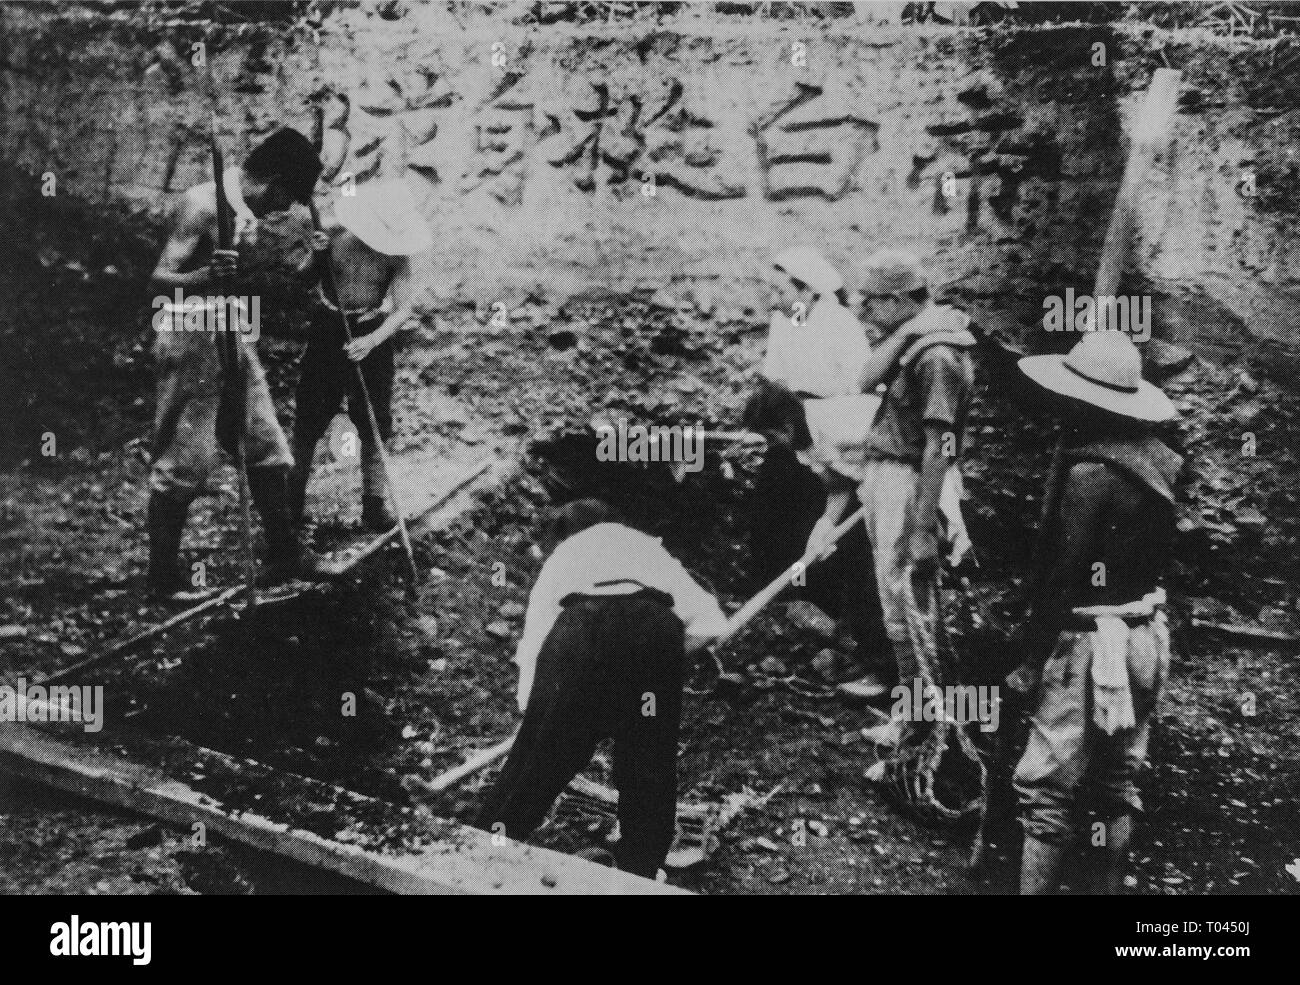 Korean workers engaging mining labor, c 1940, Hokkaido, Japan, Private Collection - Stock Image